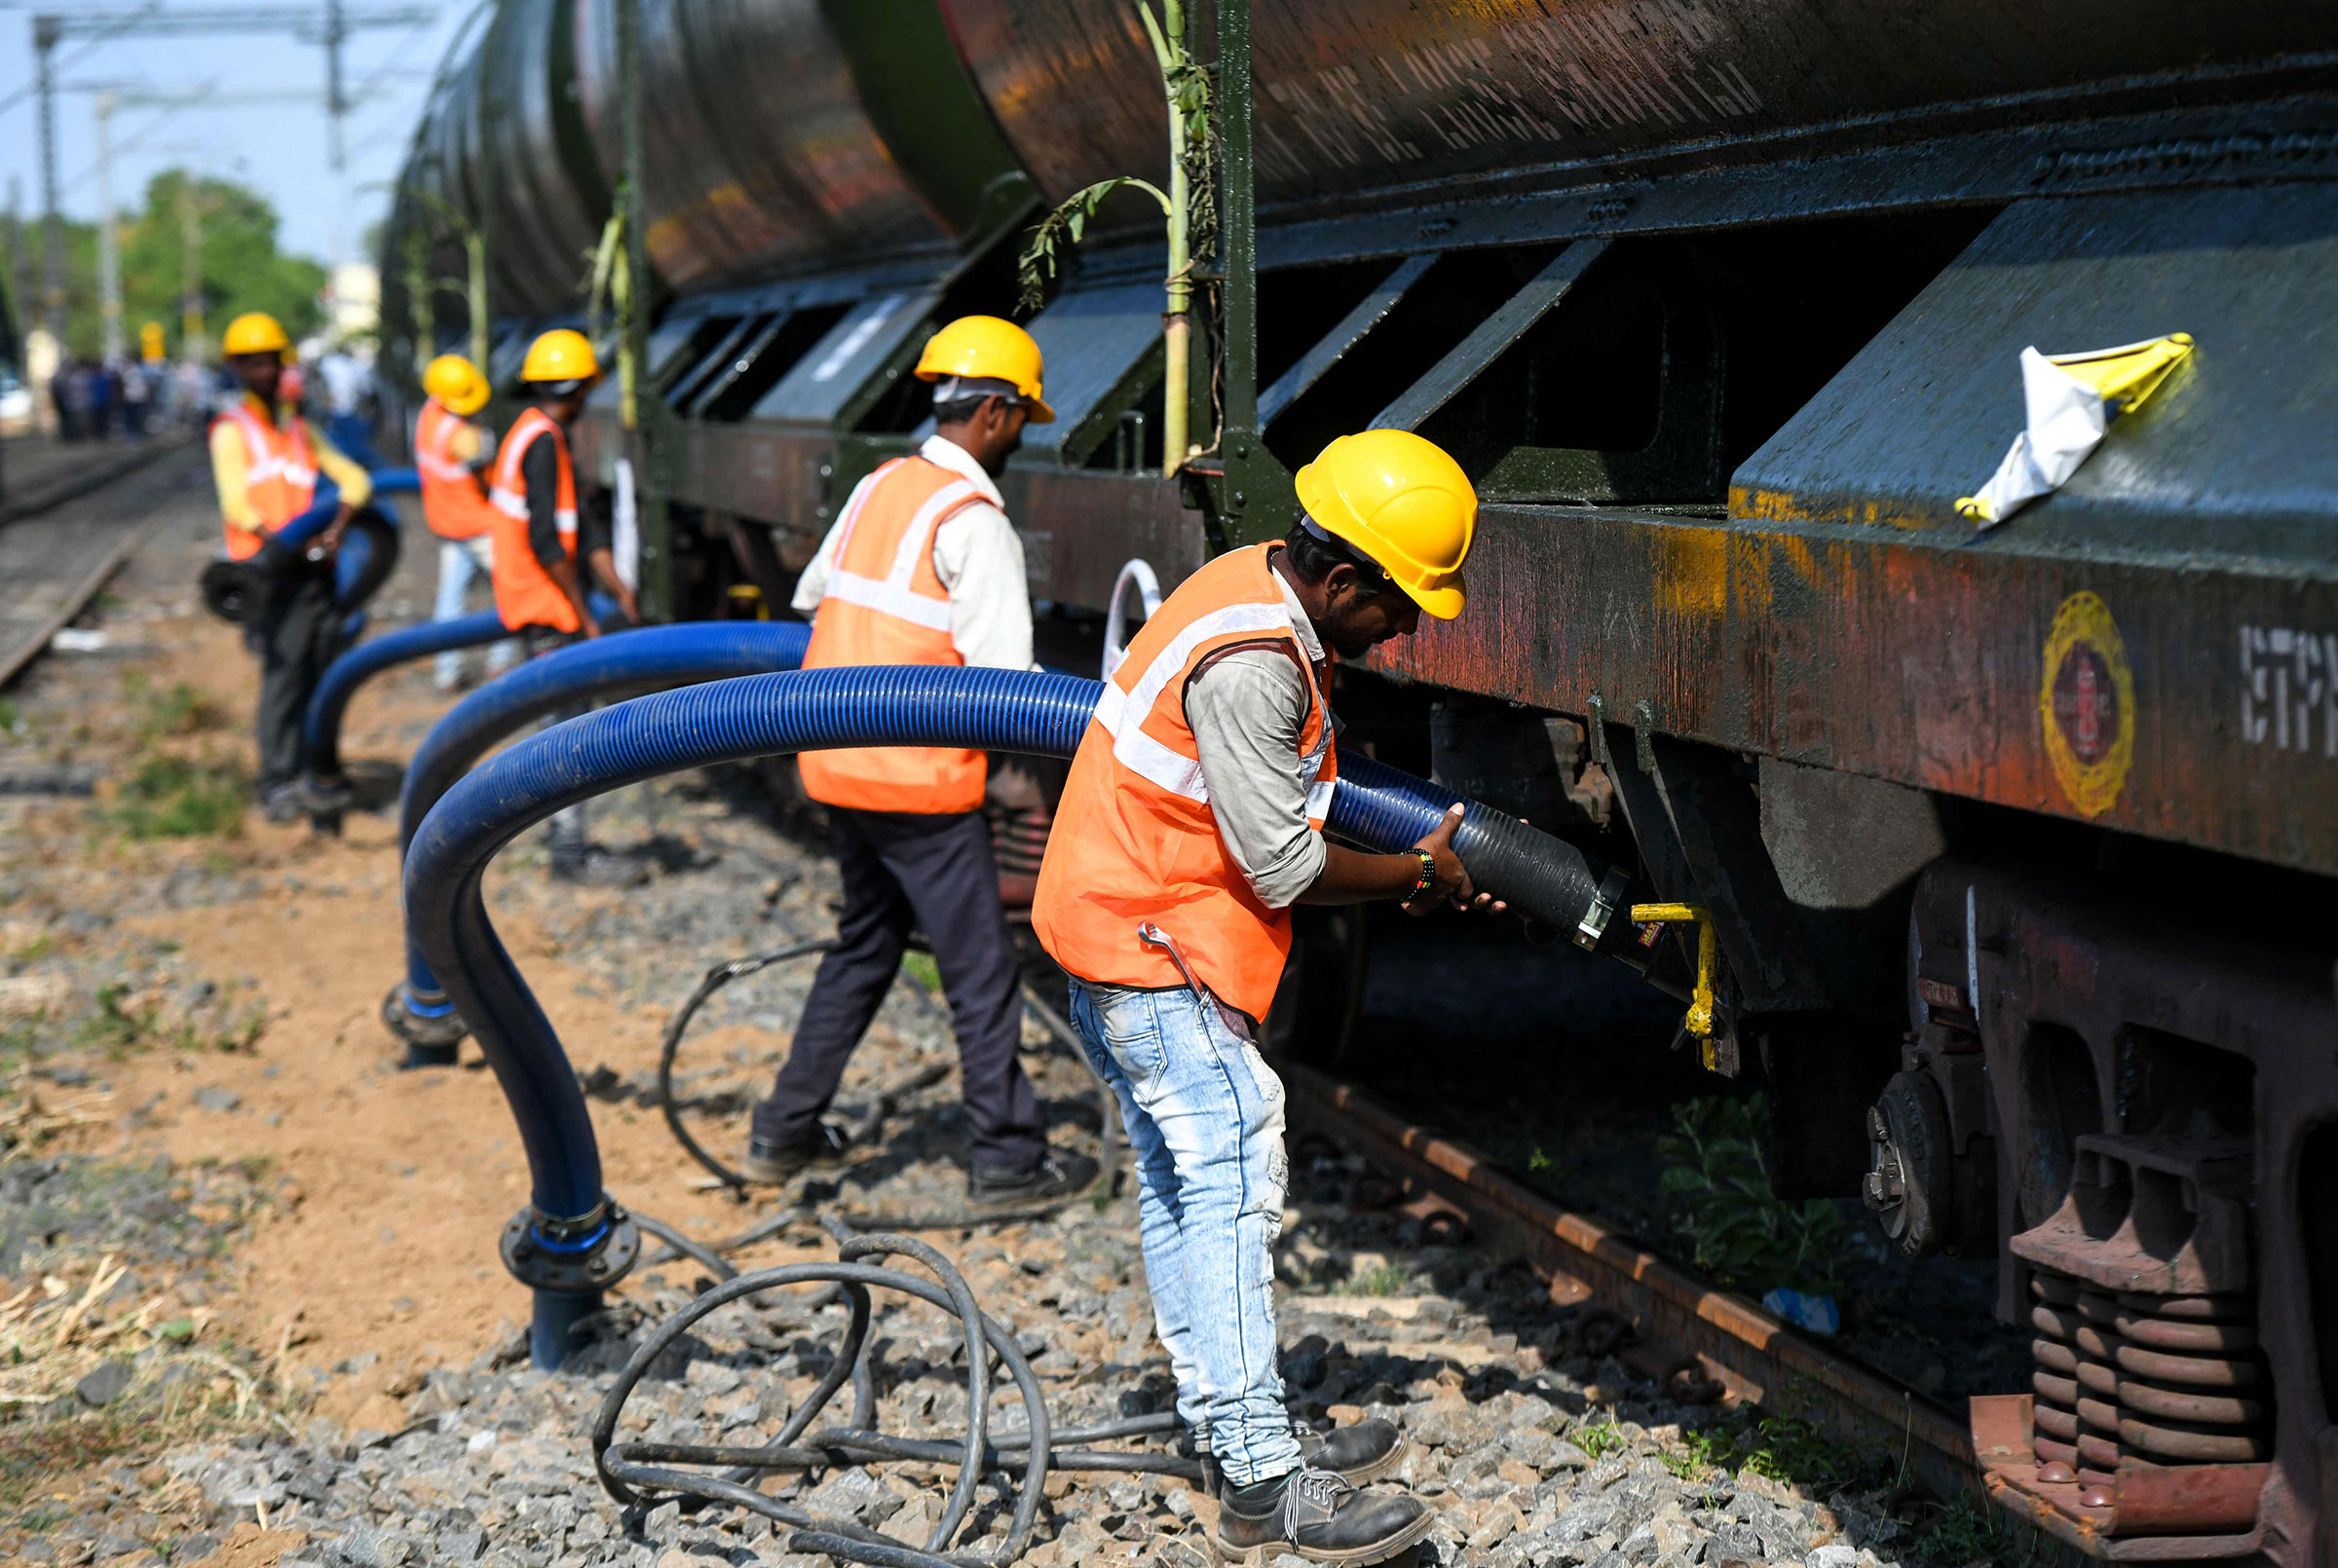 Indian laborers connect pipes to collect water from a train carrying liters of water at a railway station in Chennai on July 12.